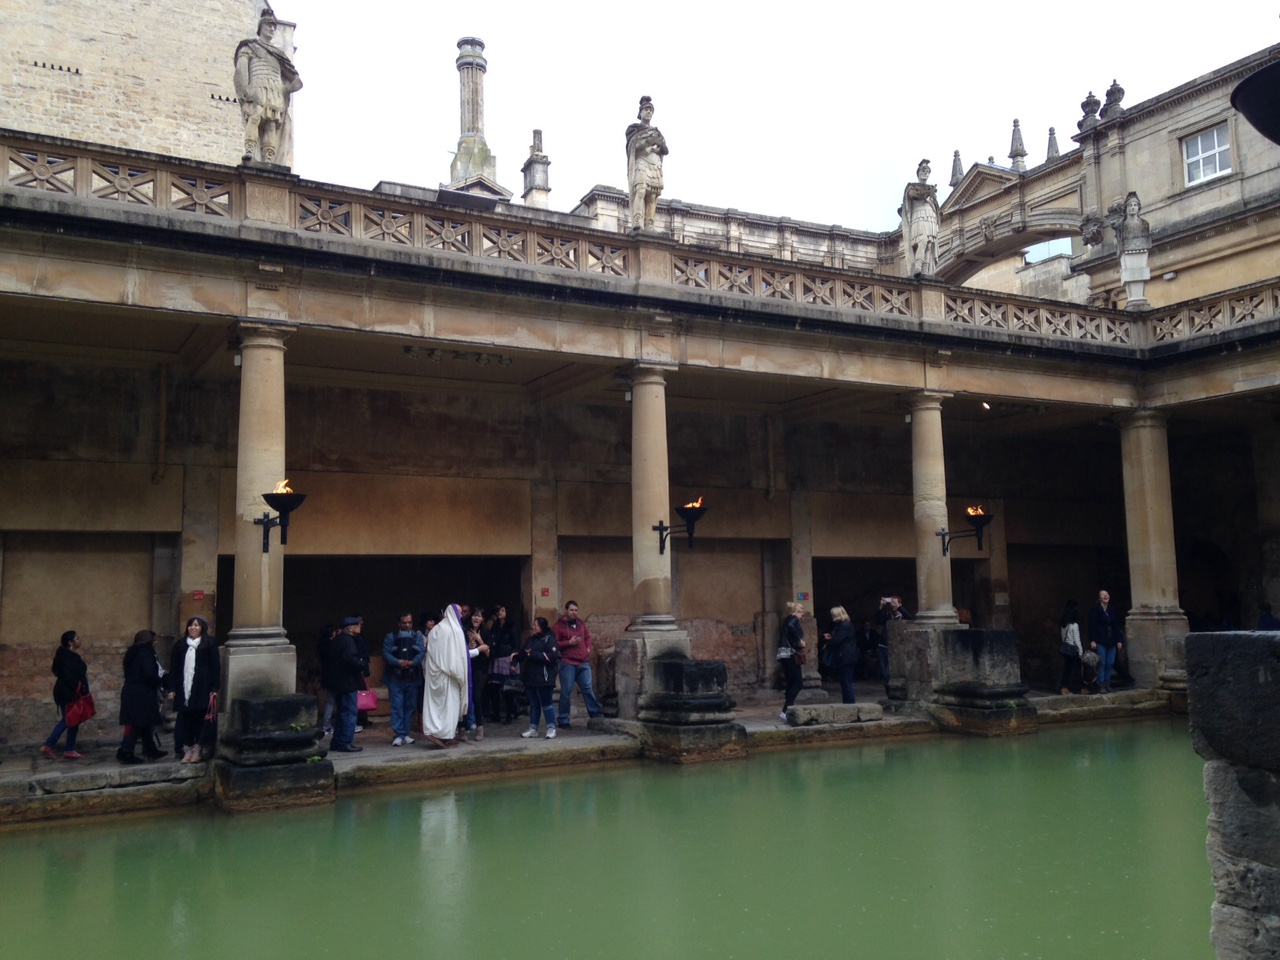 Roman structures around the hot springs in Bath, England. May 2015